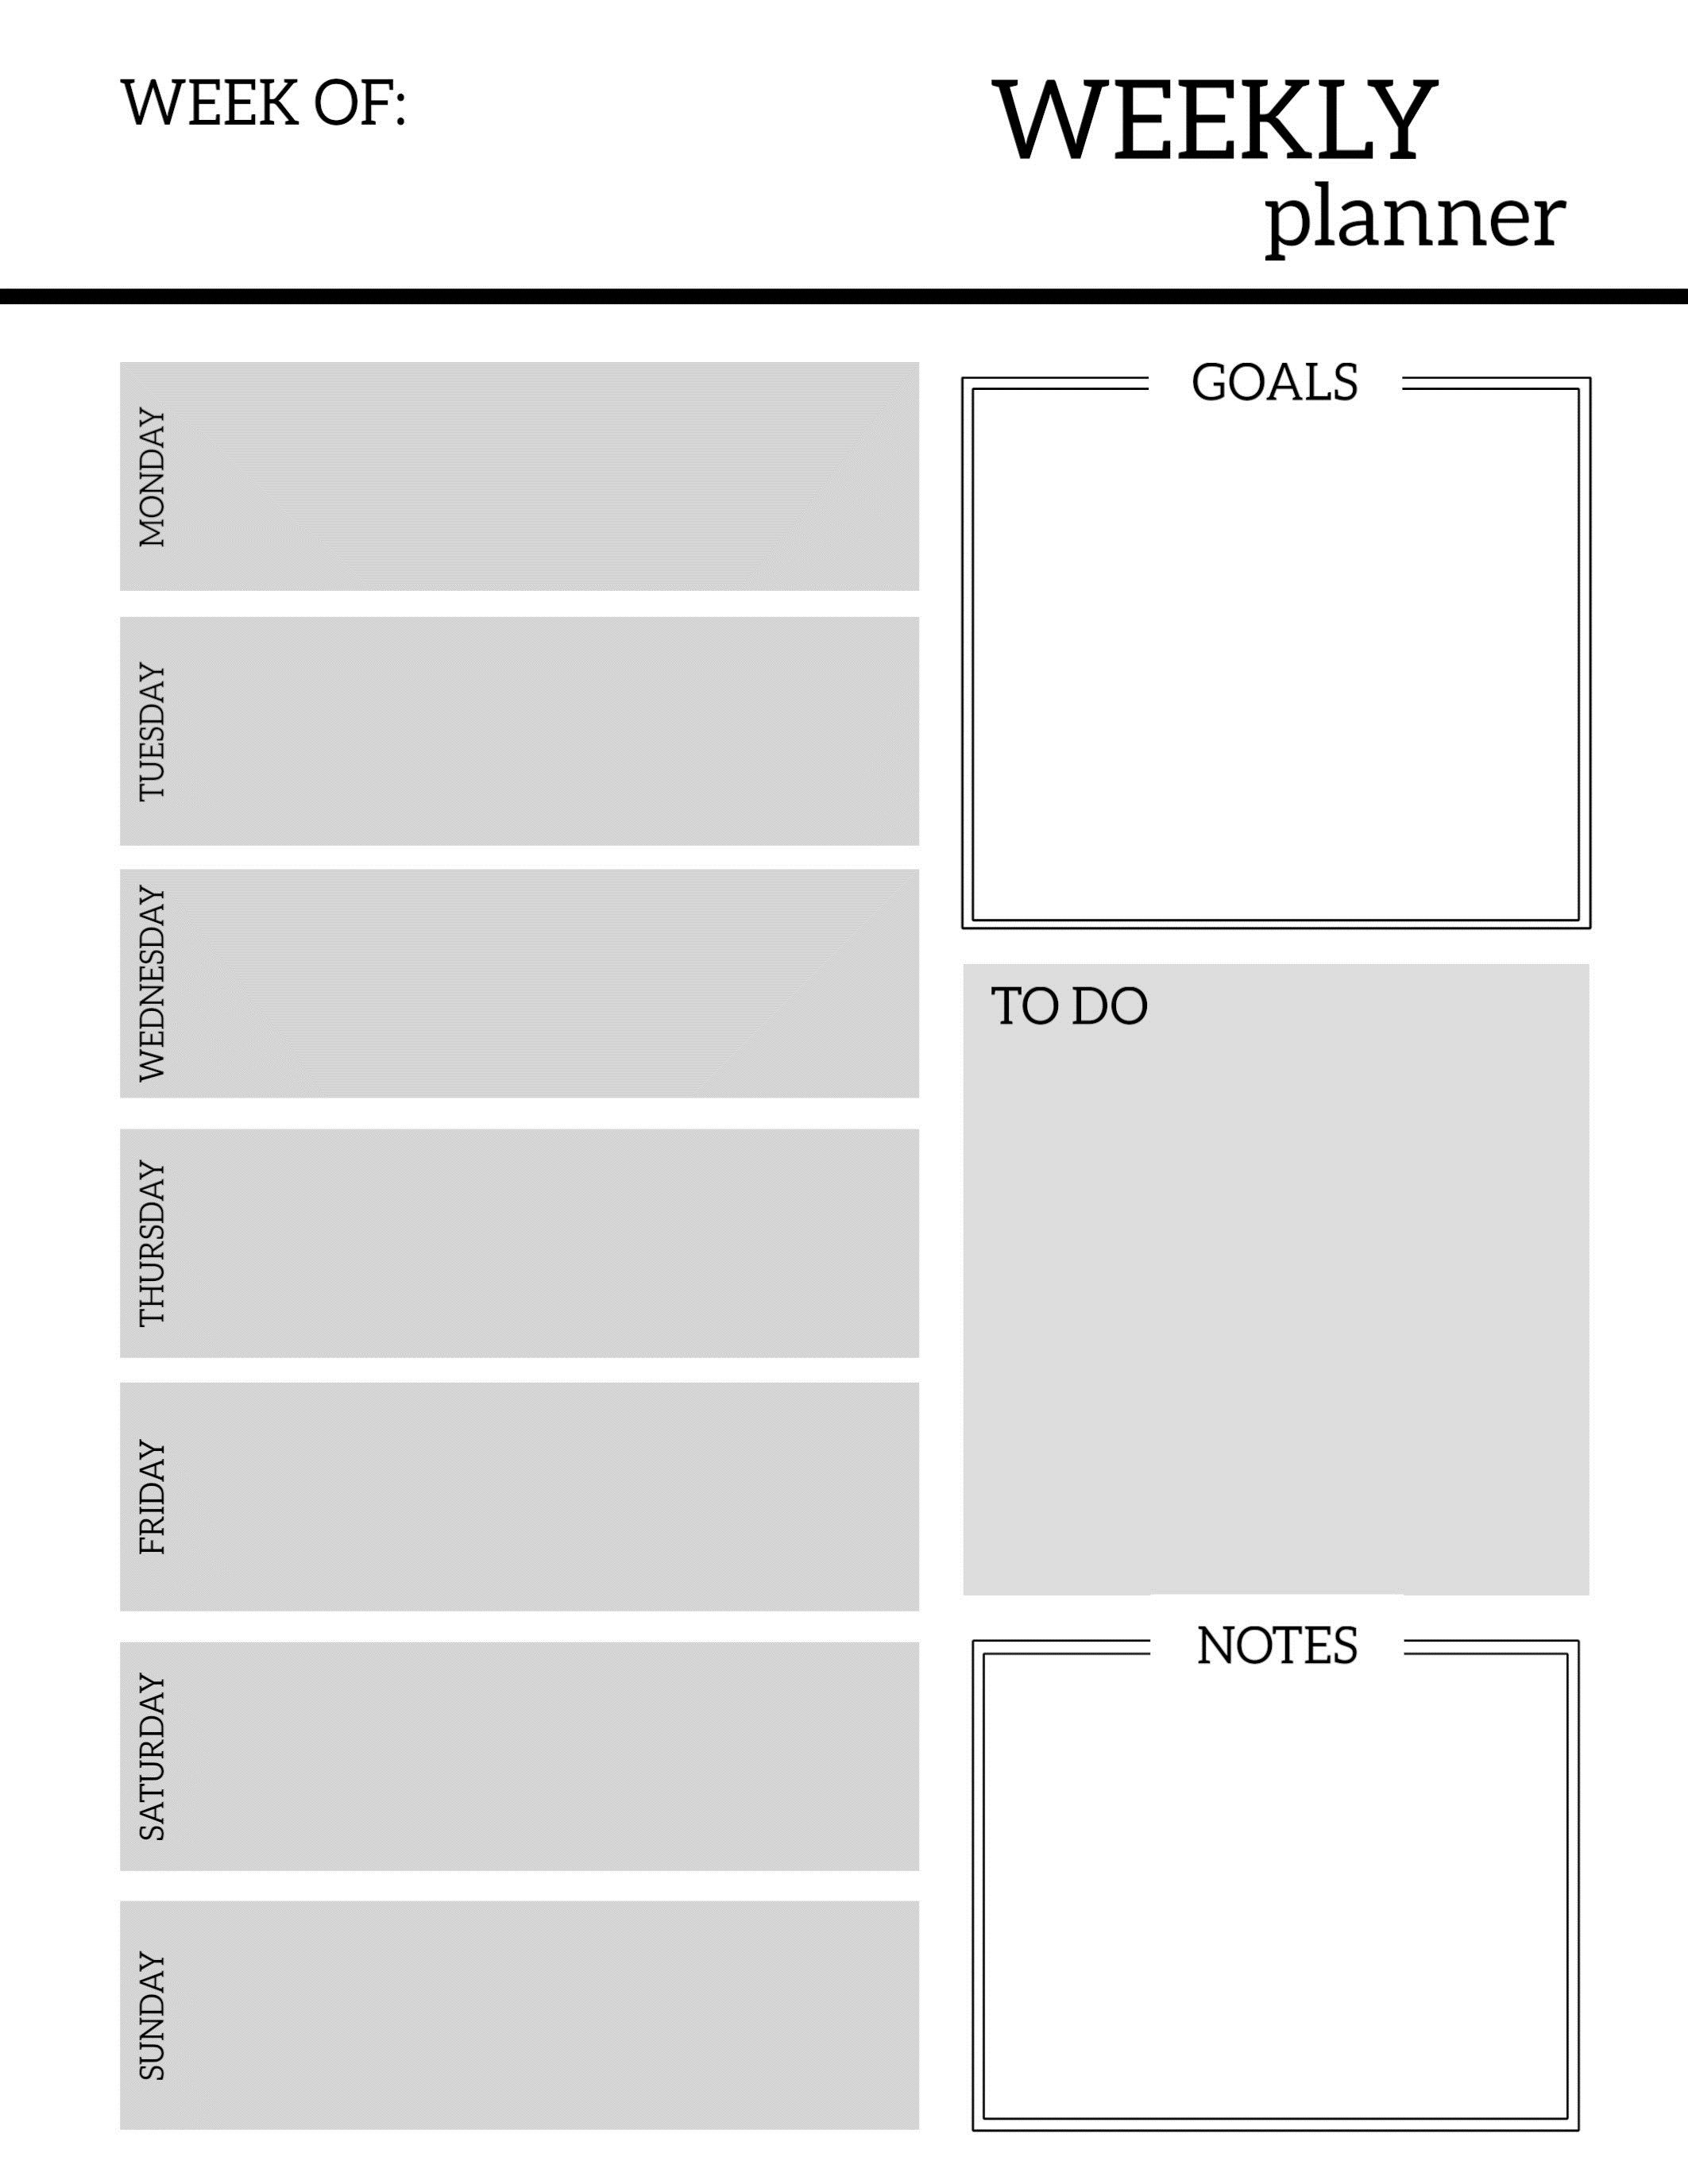 009 Breathtaking Excel Weekly Planner Template 2019 Picture  HolidayFull